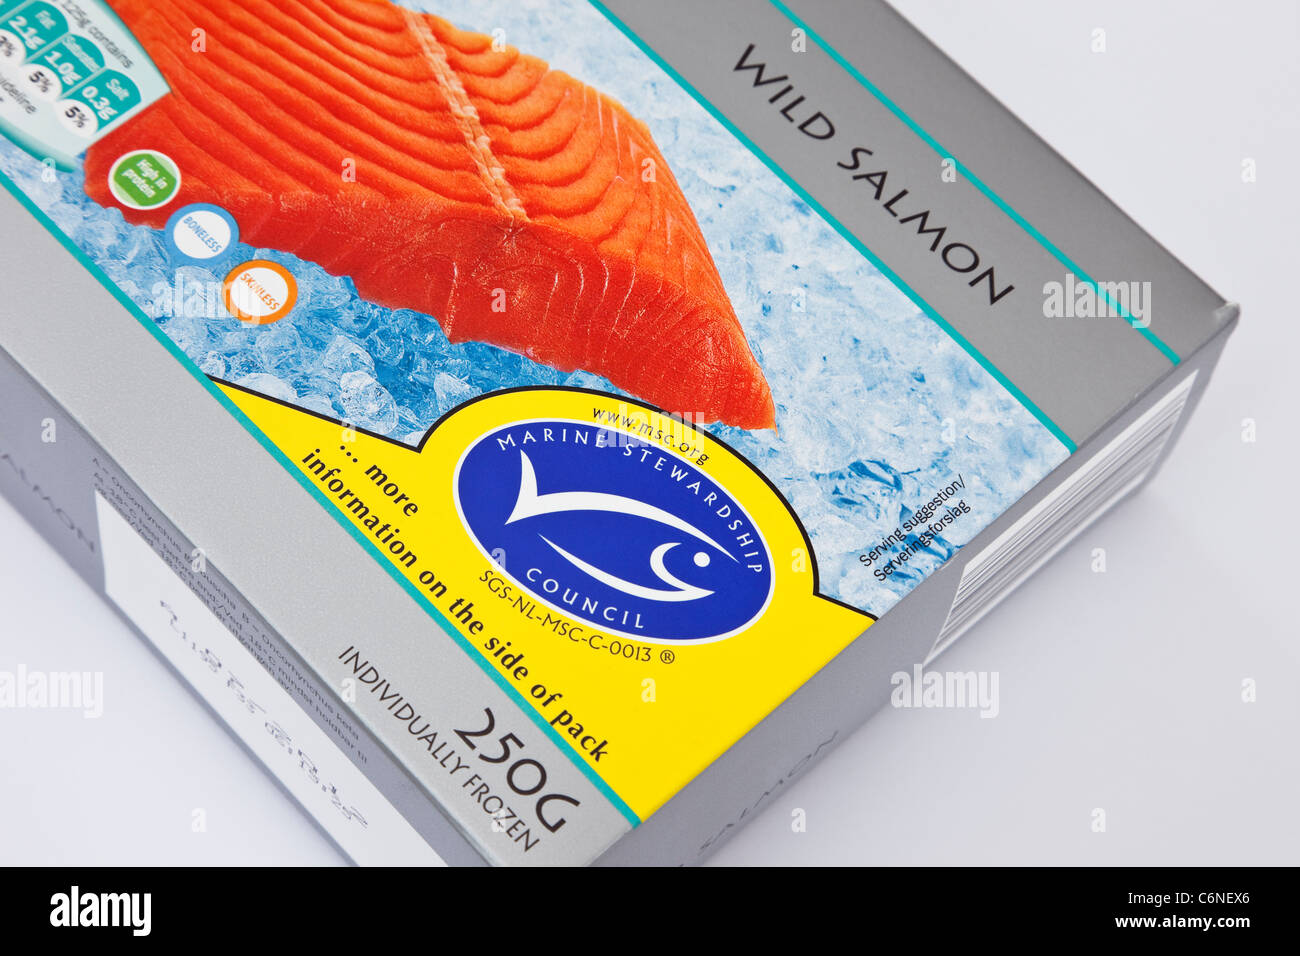 Packet of frozen wild salmon fillets with Marine Stewardship Council label and logo - Stock Image